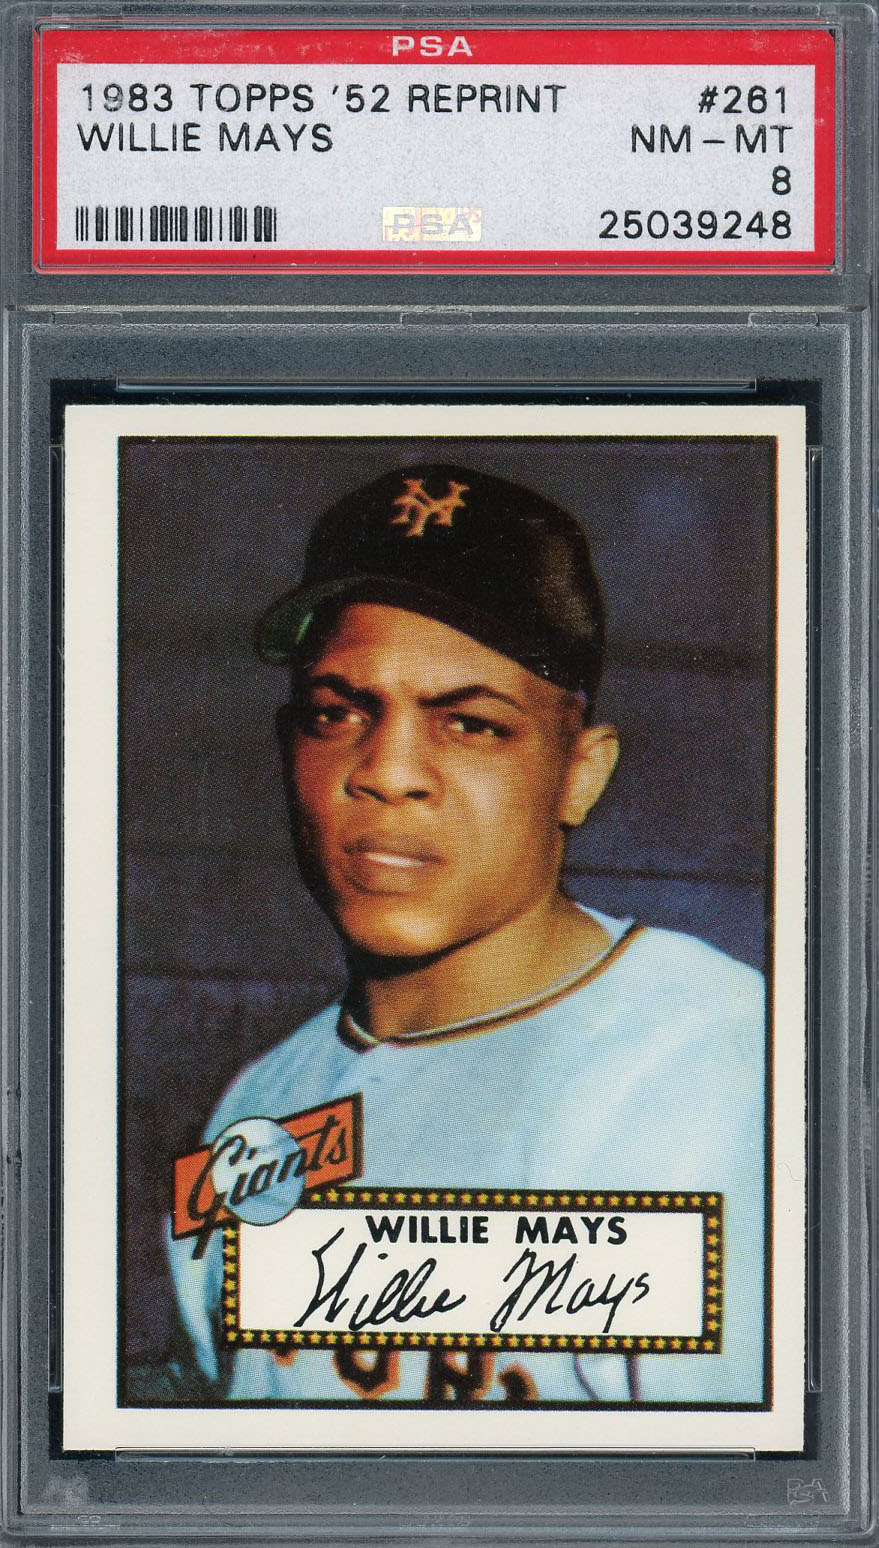 Willie Mays San Francisco Giants 1983 Topps 1952 Reprint Baseball Card #261 Graded PSA 8 Willie Mays San Francisco Giants 1983 Topps 1952 Reprint Baseball Card #261 Graded PSA 8